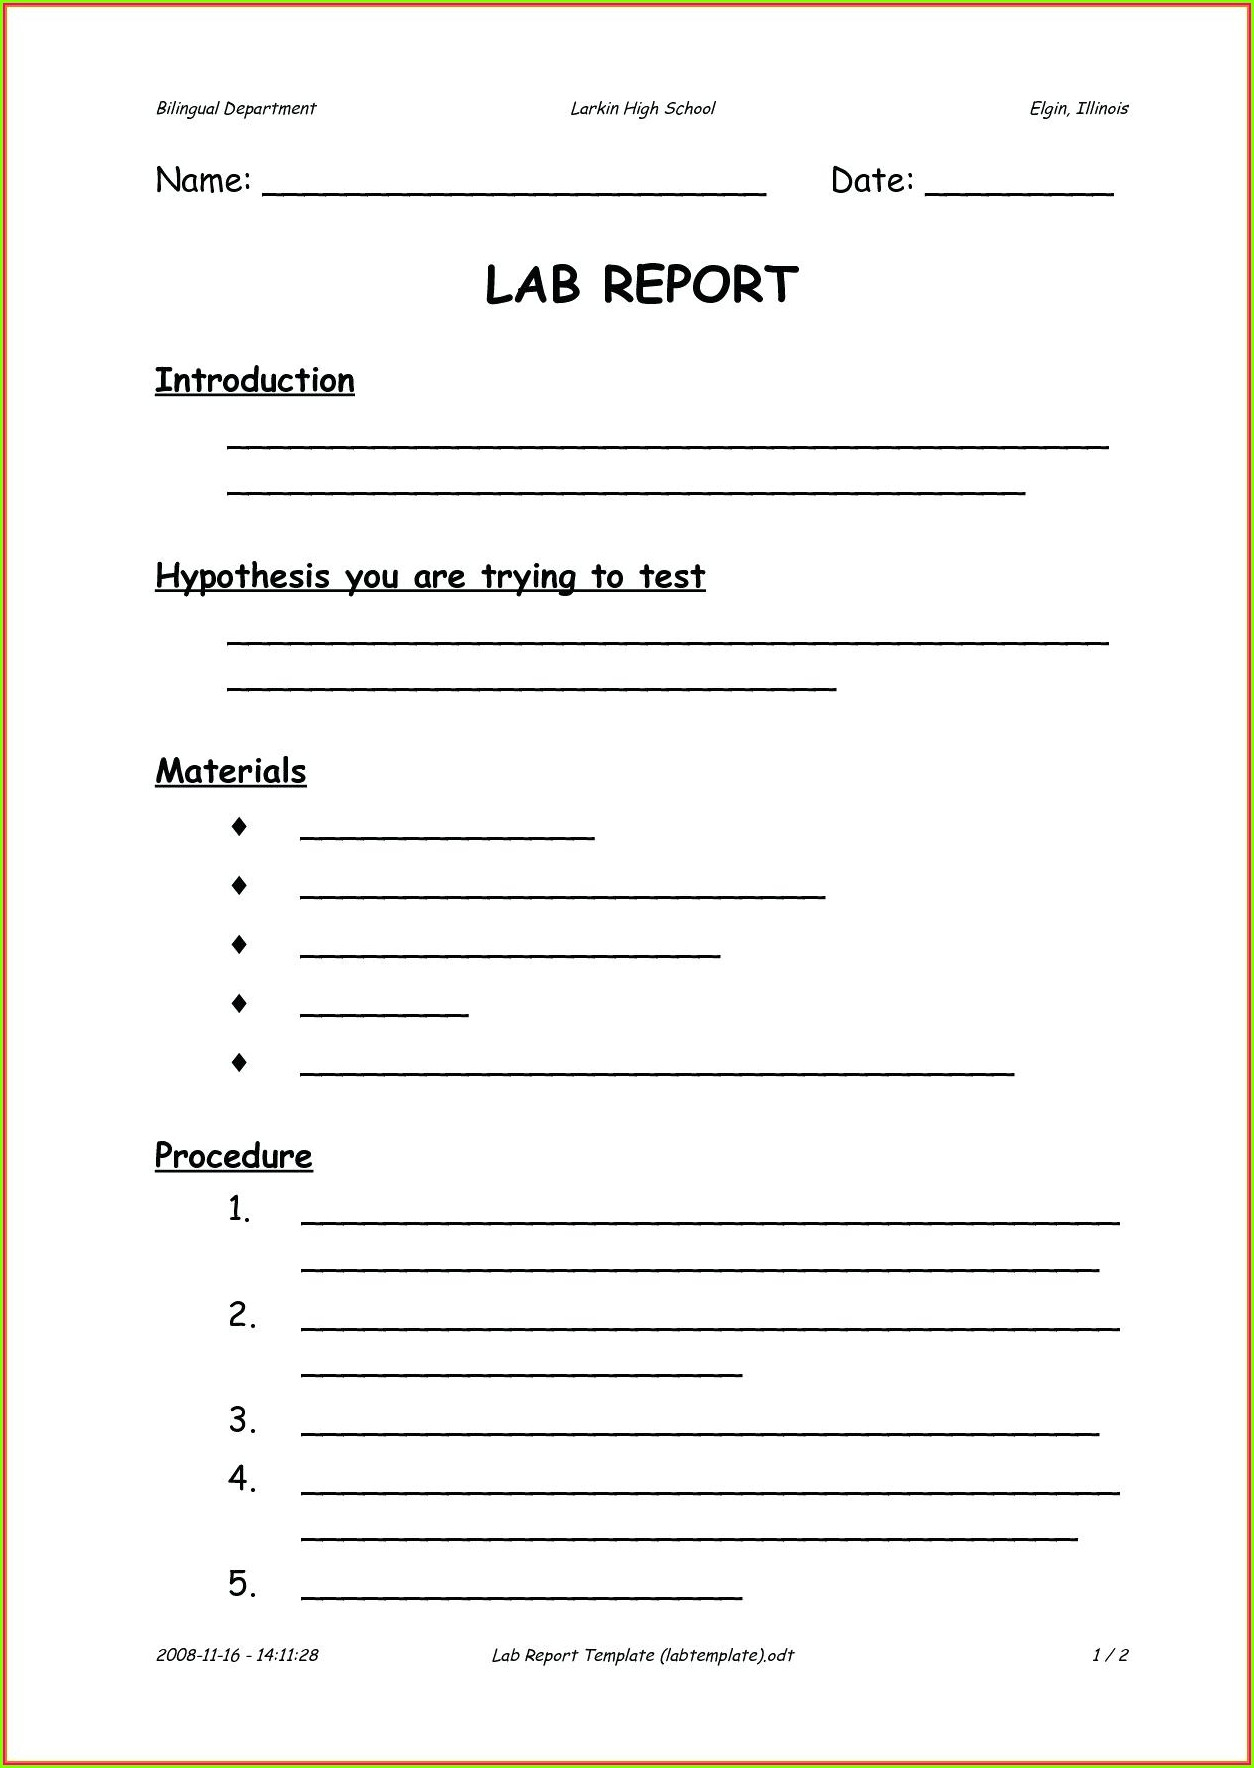 Scientific Method Worksheet Elementary School